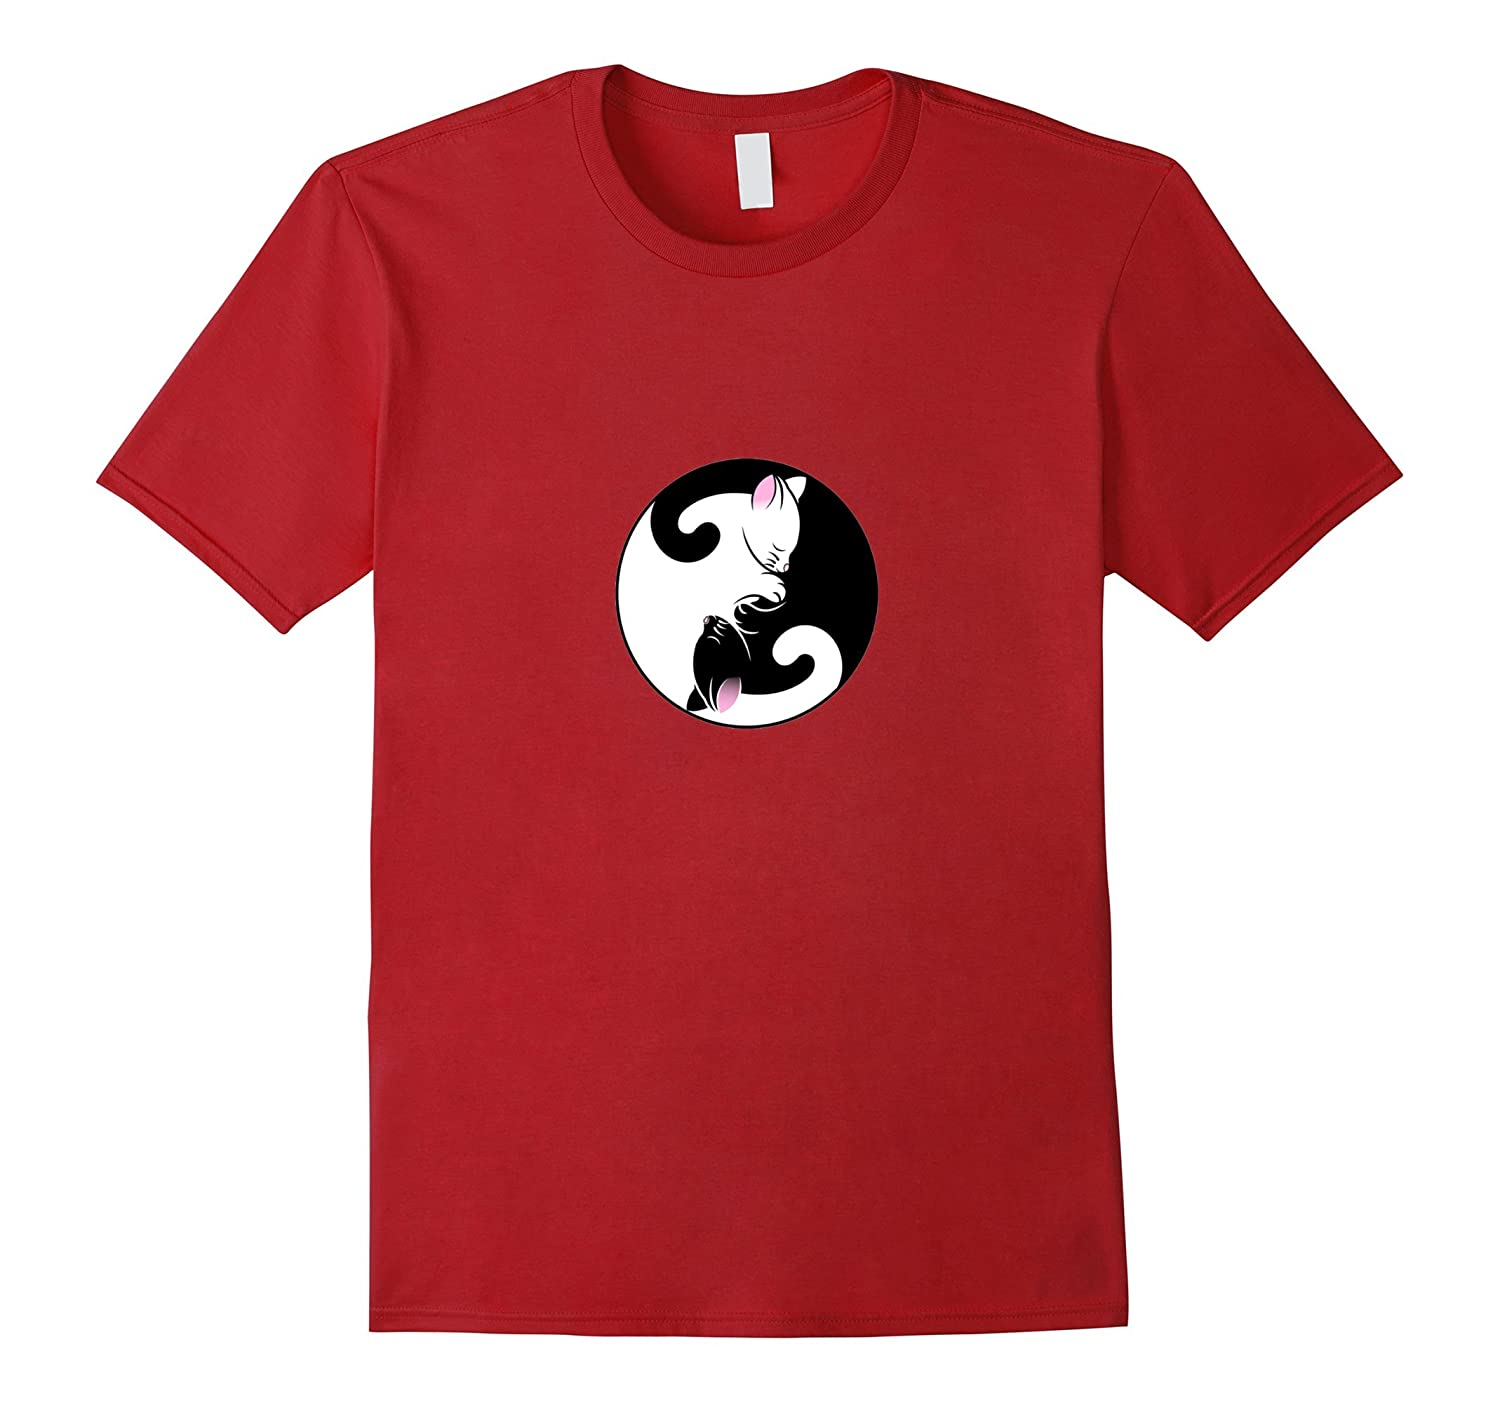 Cat T-Shirt Yin Yang Black and White Chinese Opposites-CL